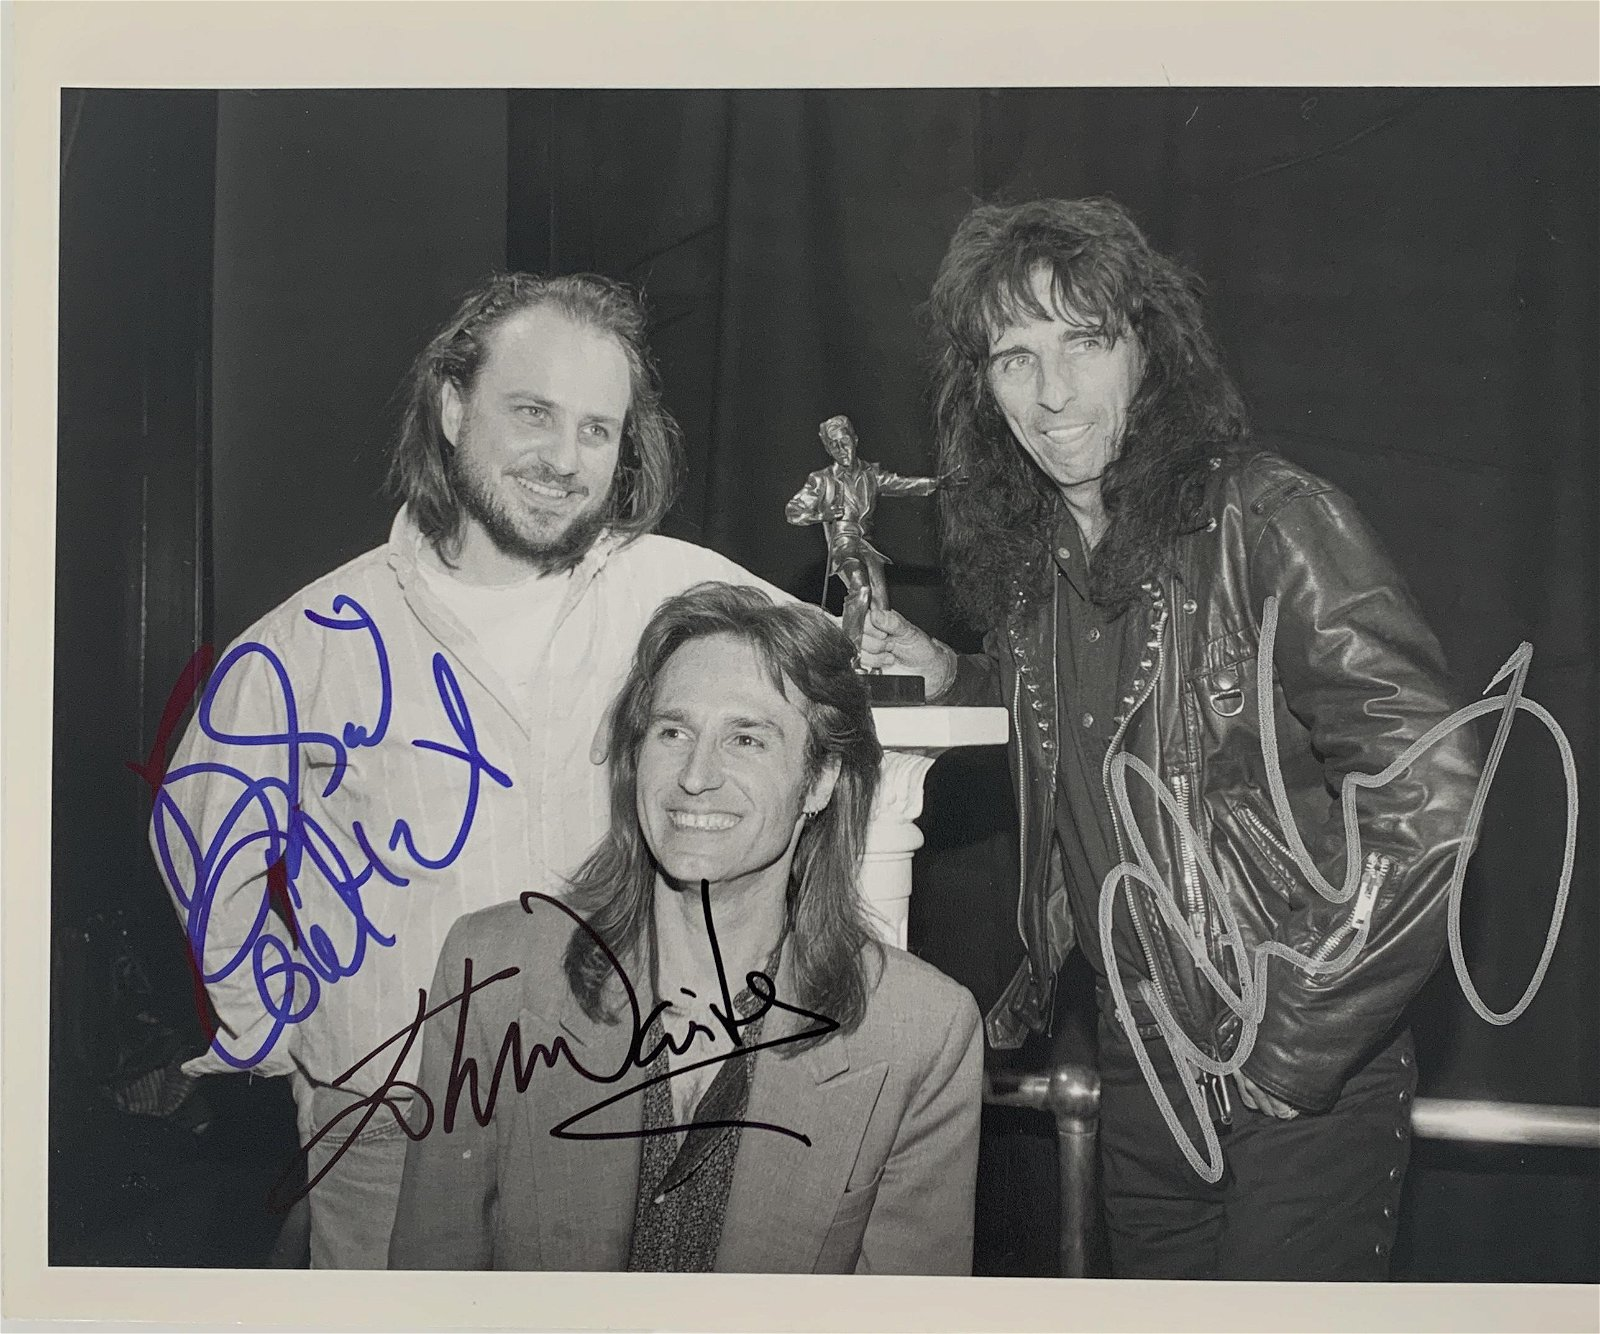 Bobcat Goldwaite, Alice Cooper and John Waite signed